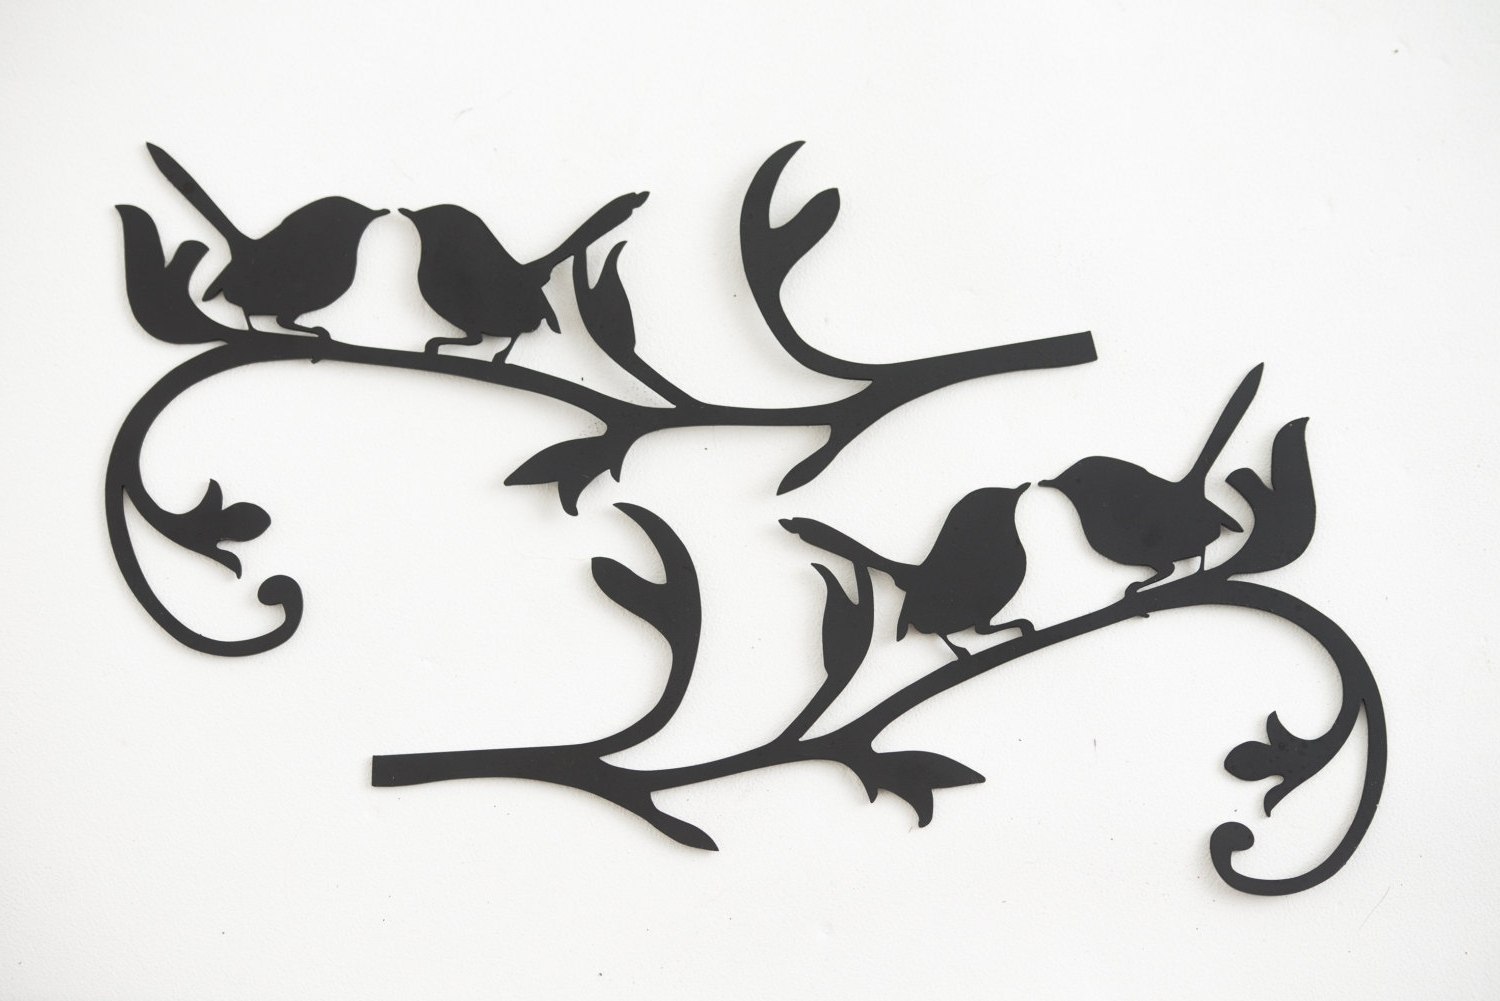 Most Up To Date Wall Art Designs: Metal Bird Wall Art Hand Drawn And Laser Cut With Regard To Flock Of Birds Metal Wall Art (View 13 of 15)